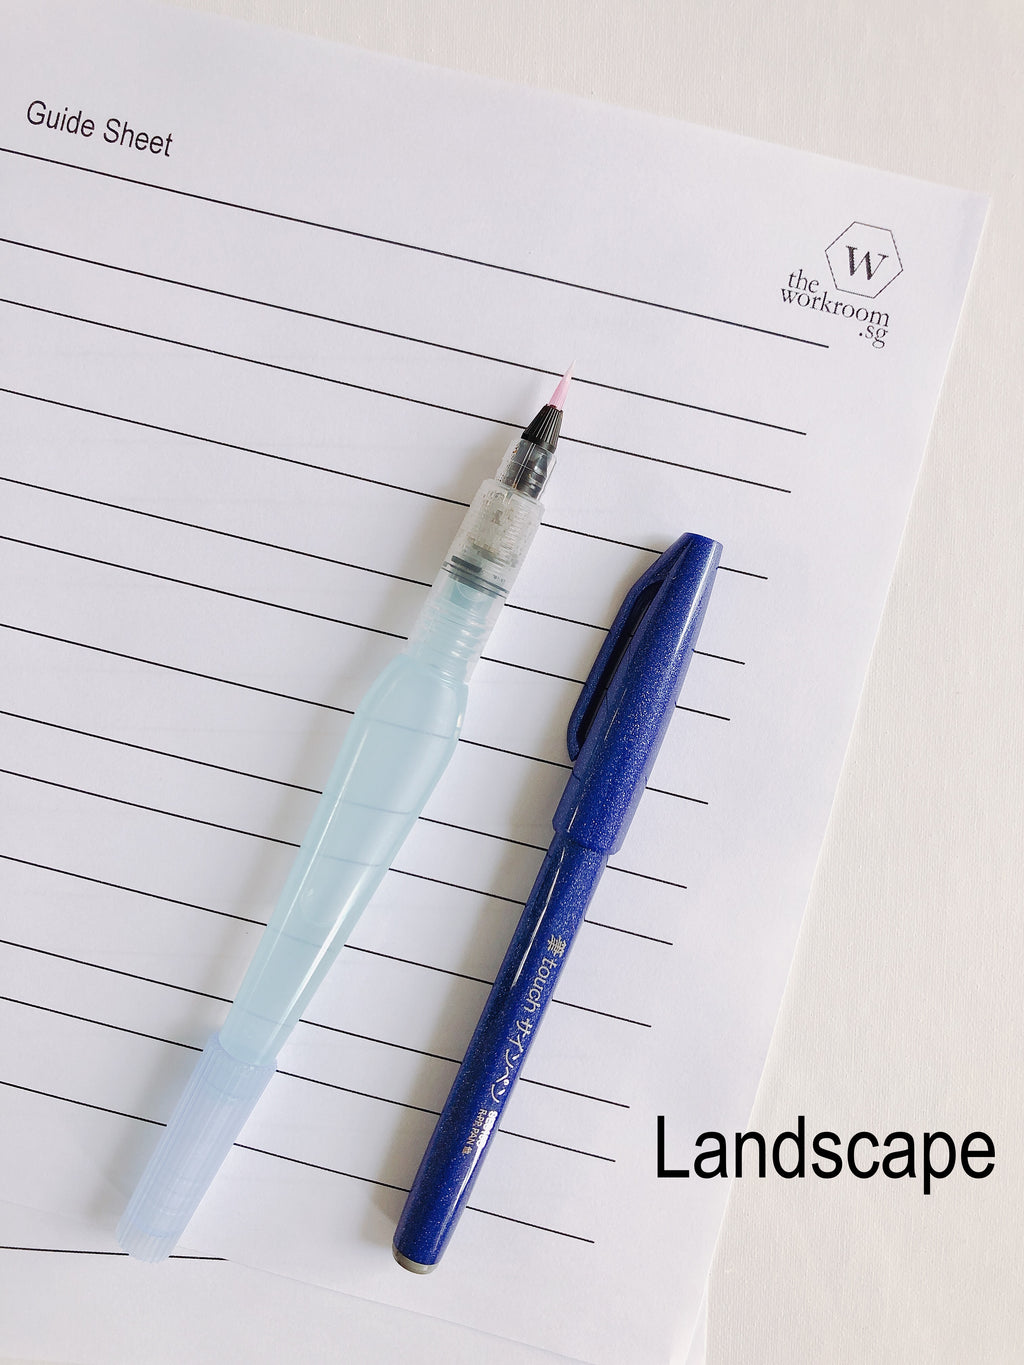 Brush Lettering Landscape Guide Sheet - PDF Download